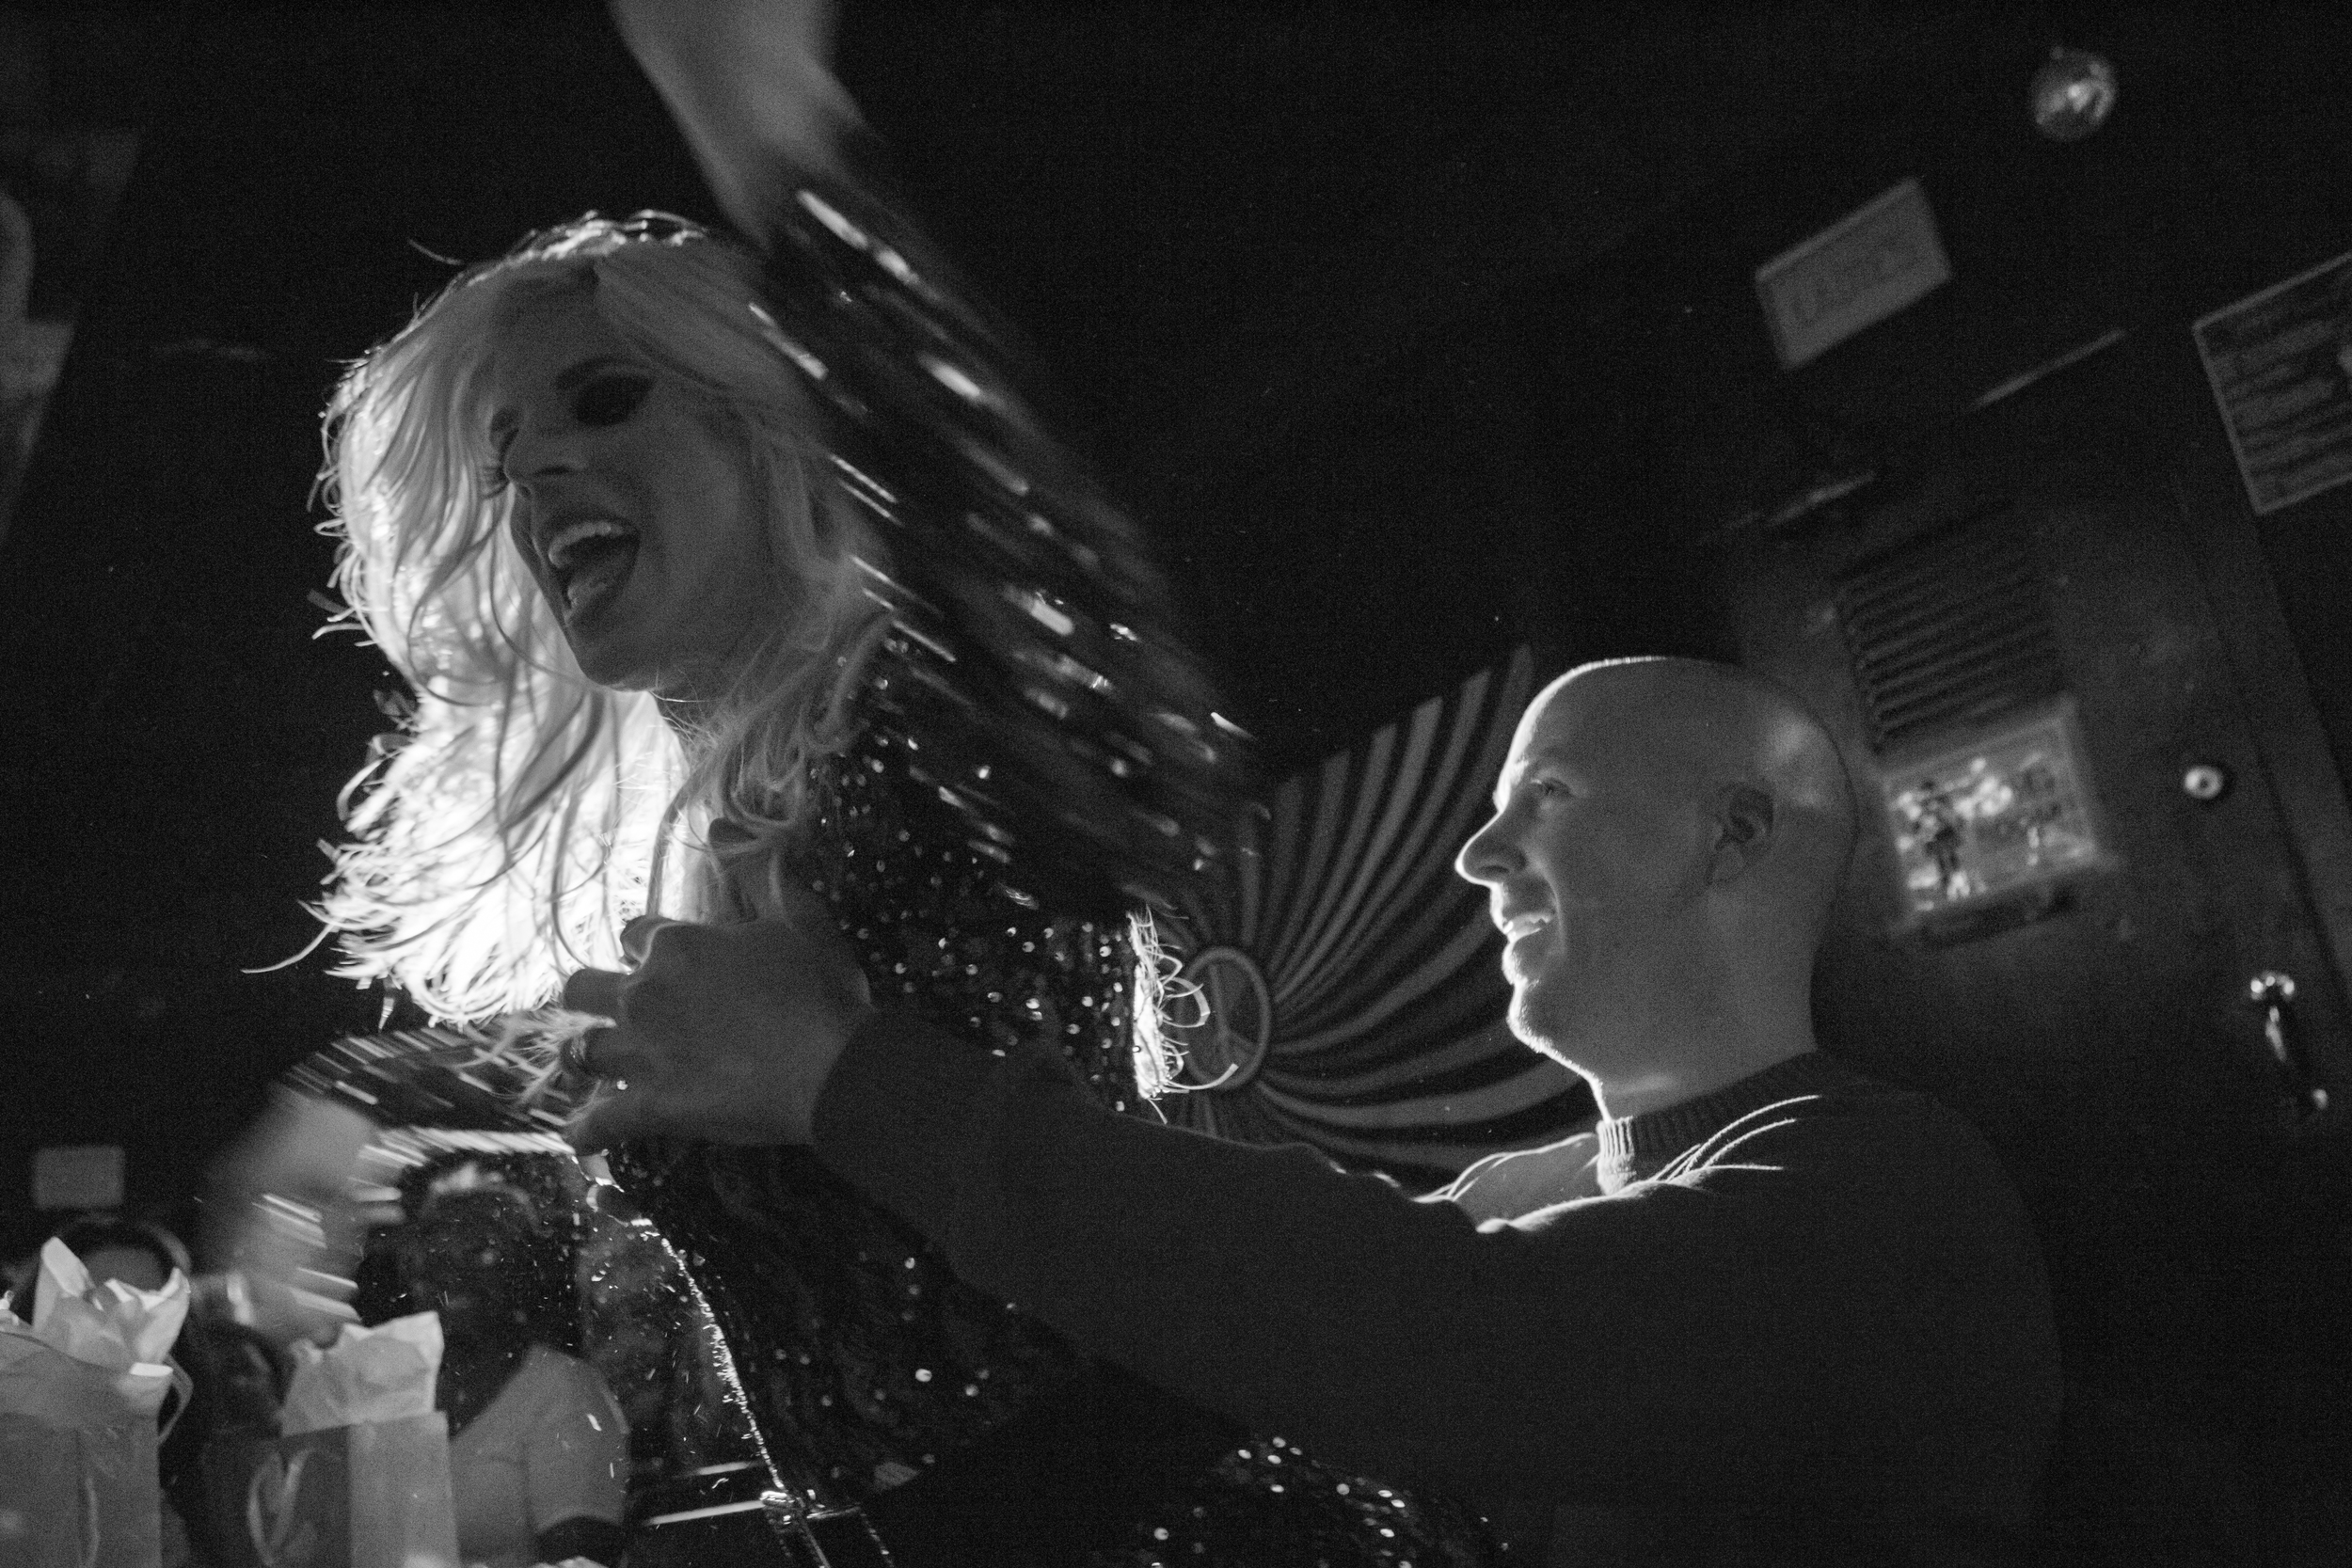 An event attendee at Jaque's, a bar on Broadway Street in Boston, Mass., reacts as Brian McCook sits on his lap during a performance that featured dancers in drag. Photo credit: Justin Saglio